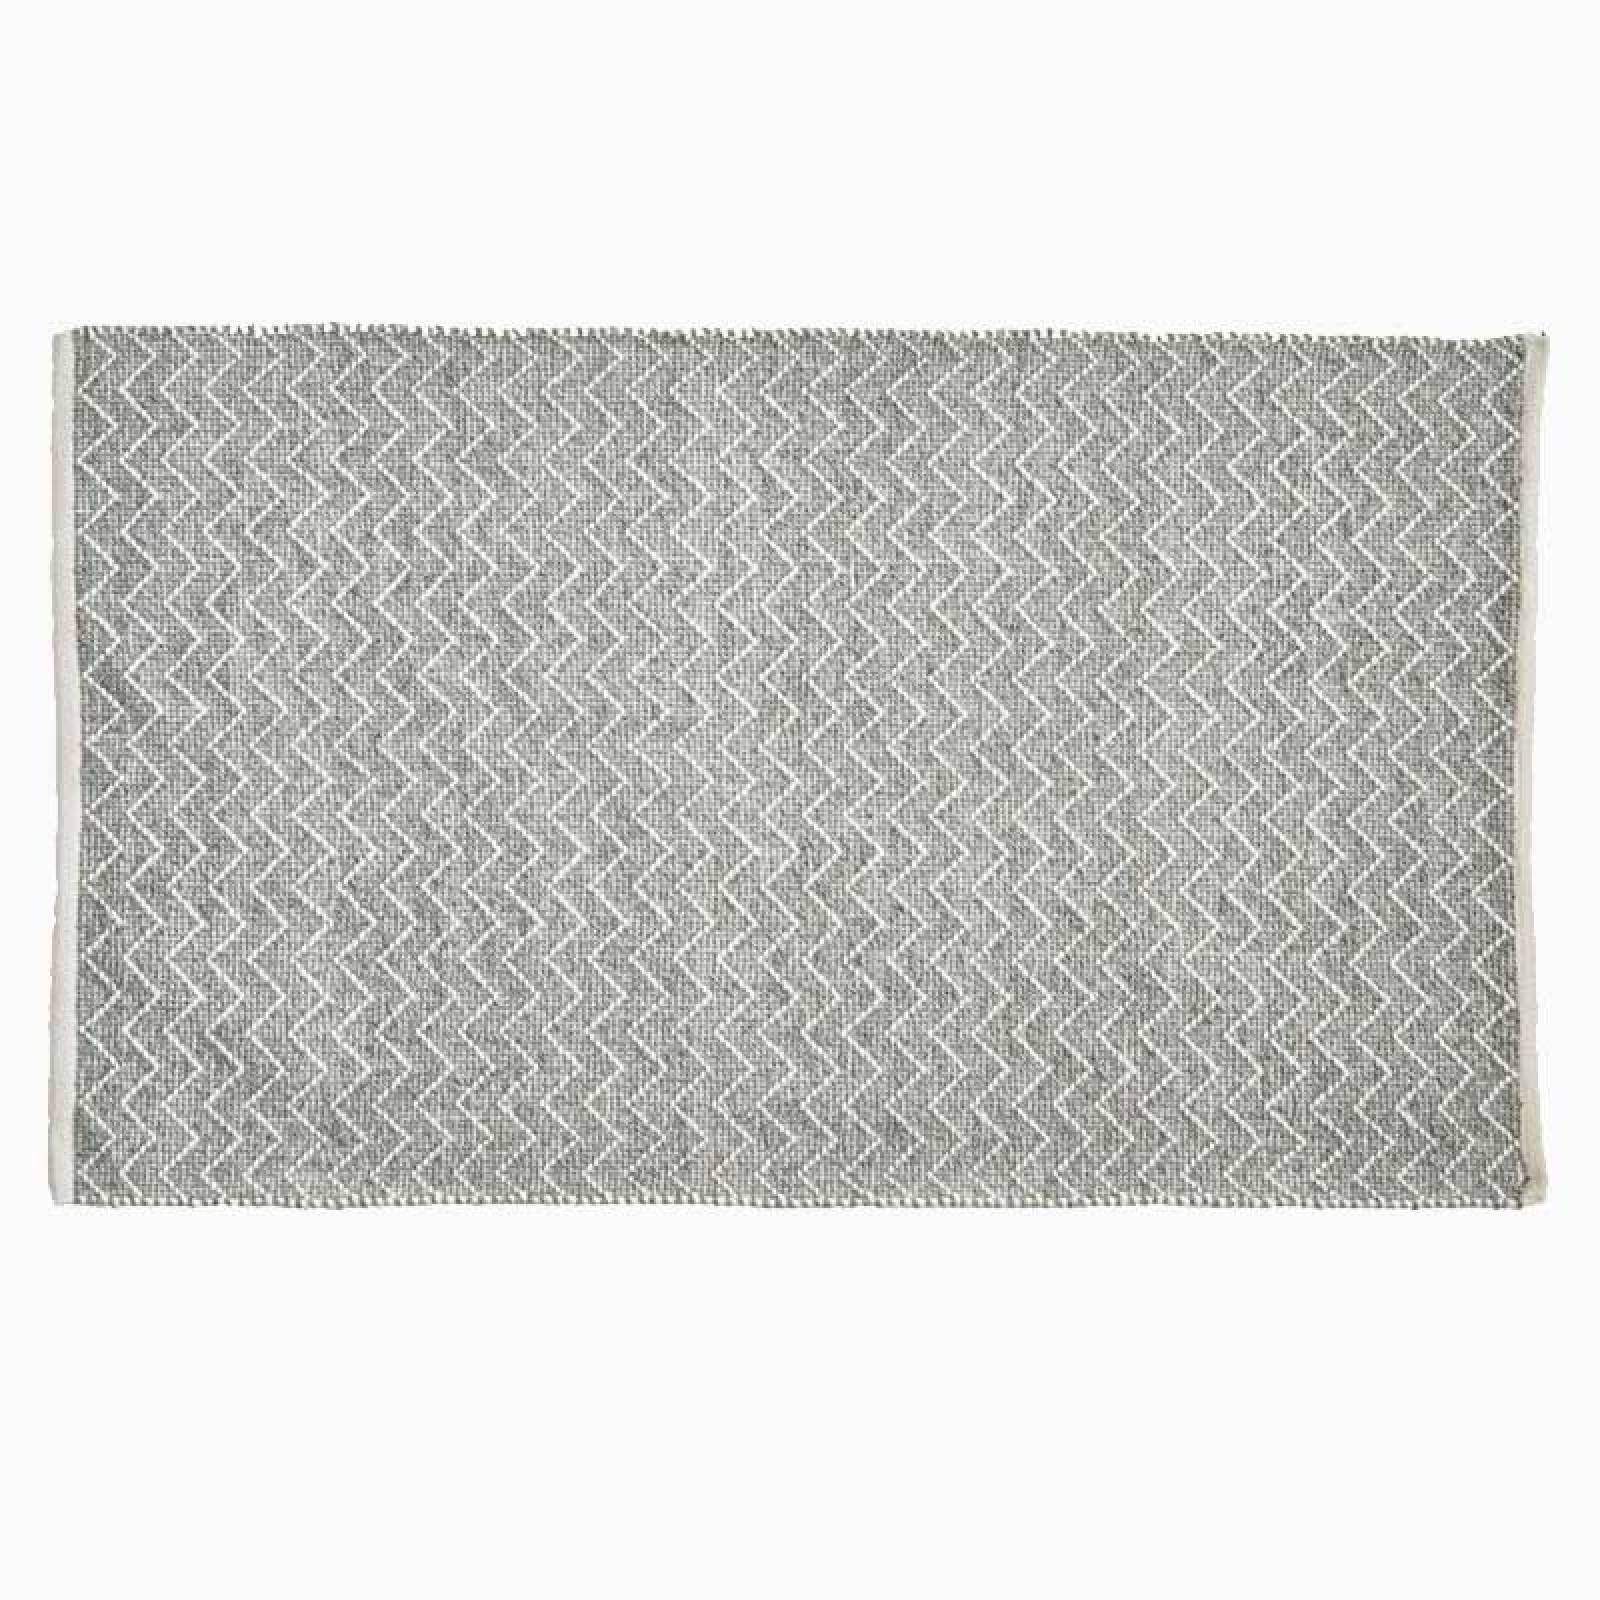 Chenille Dove Grey 240 x 70cm Recycled Bottle Rug thumbnails